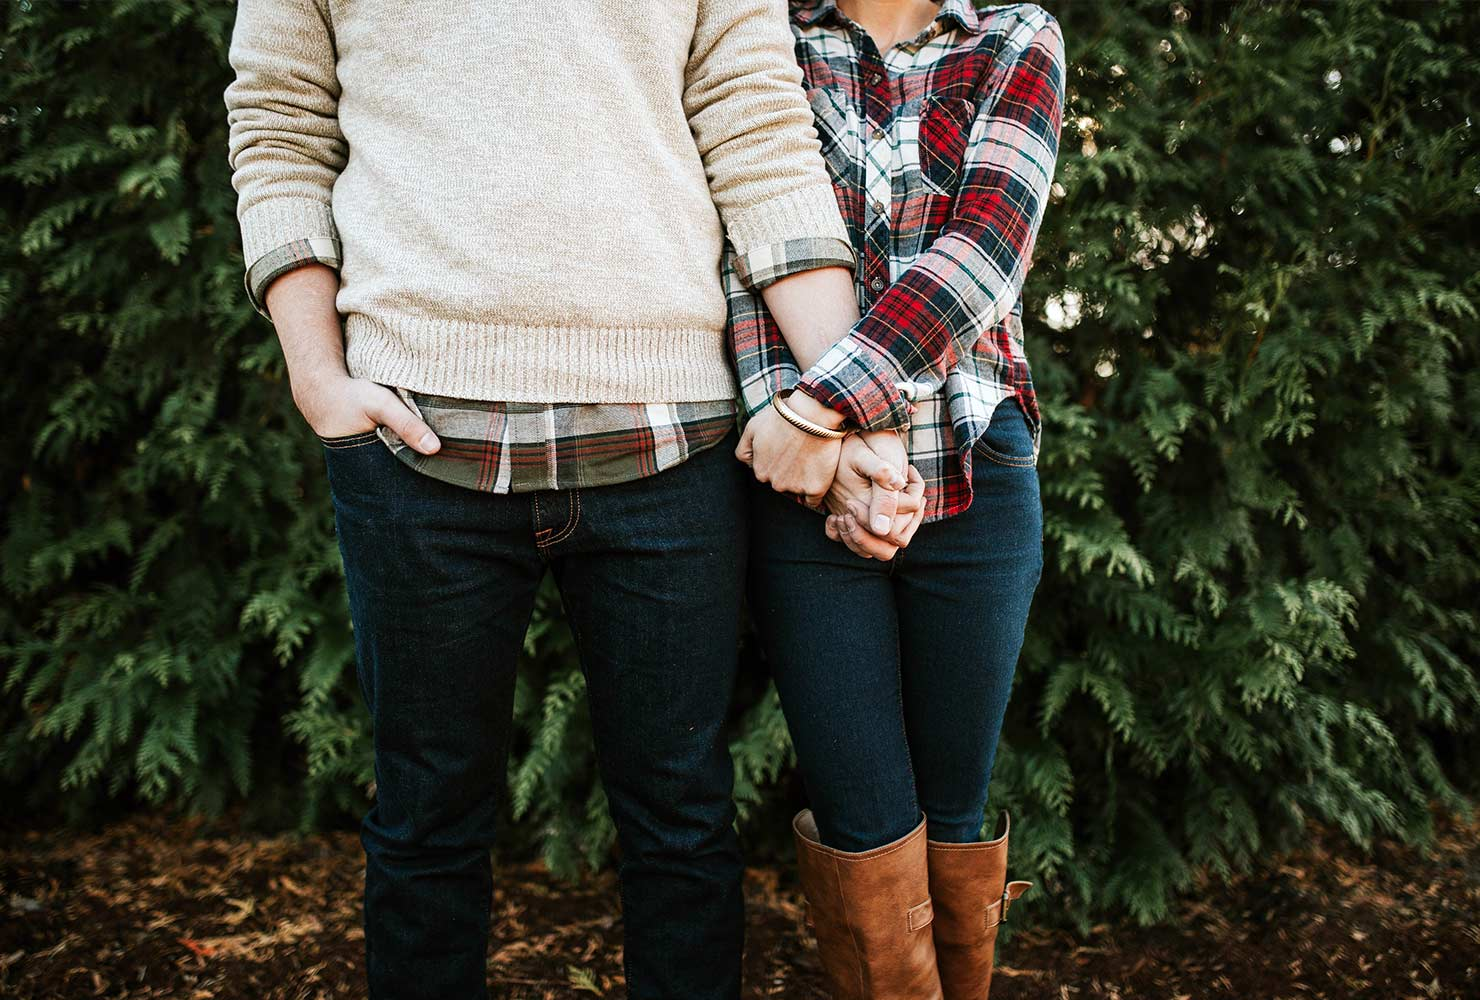 couple wearing plaid holding hands